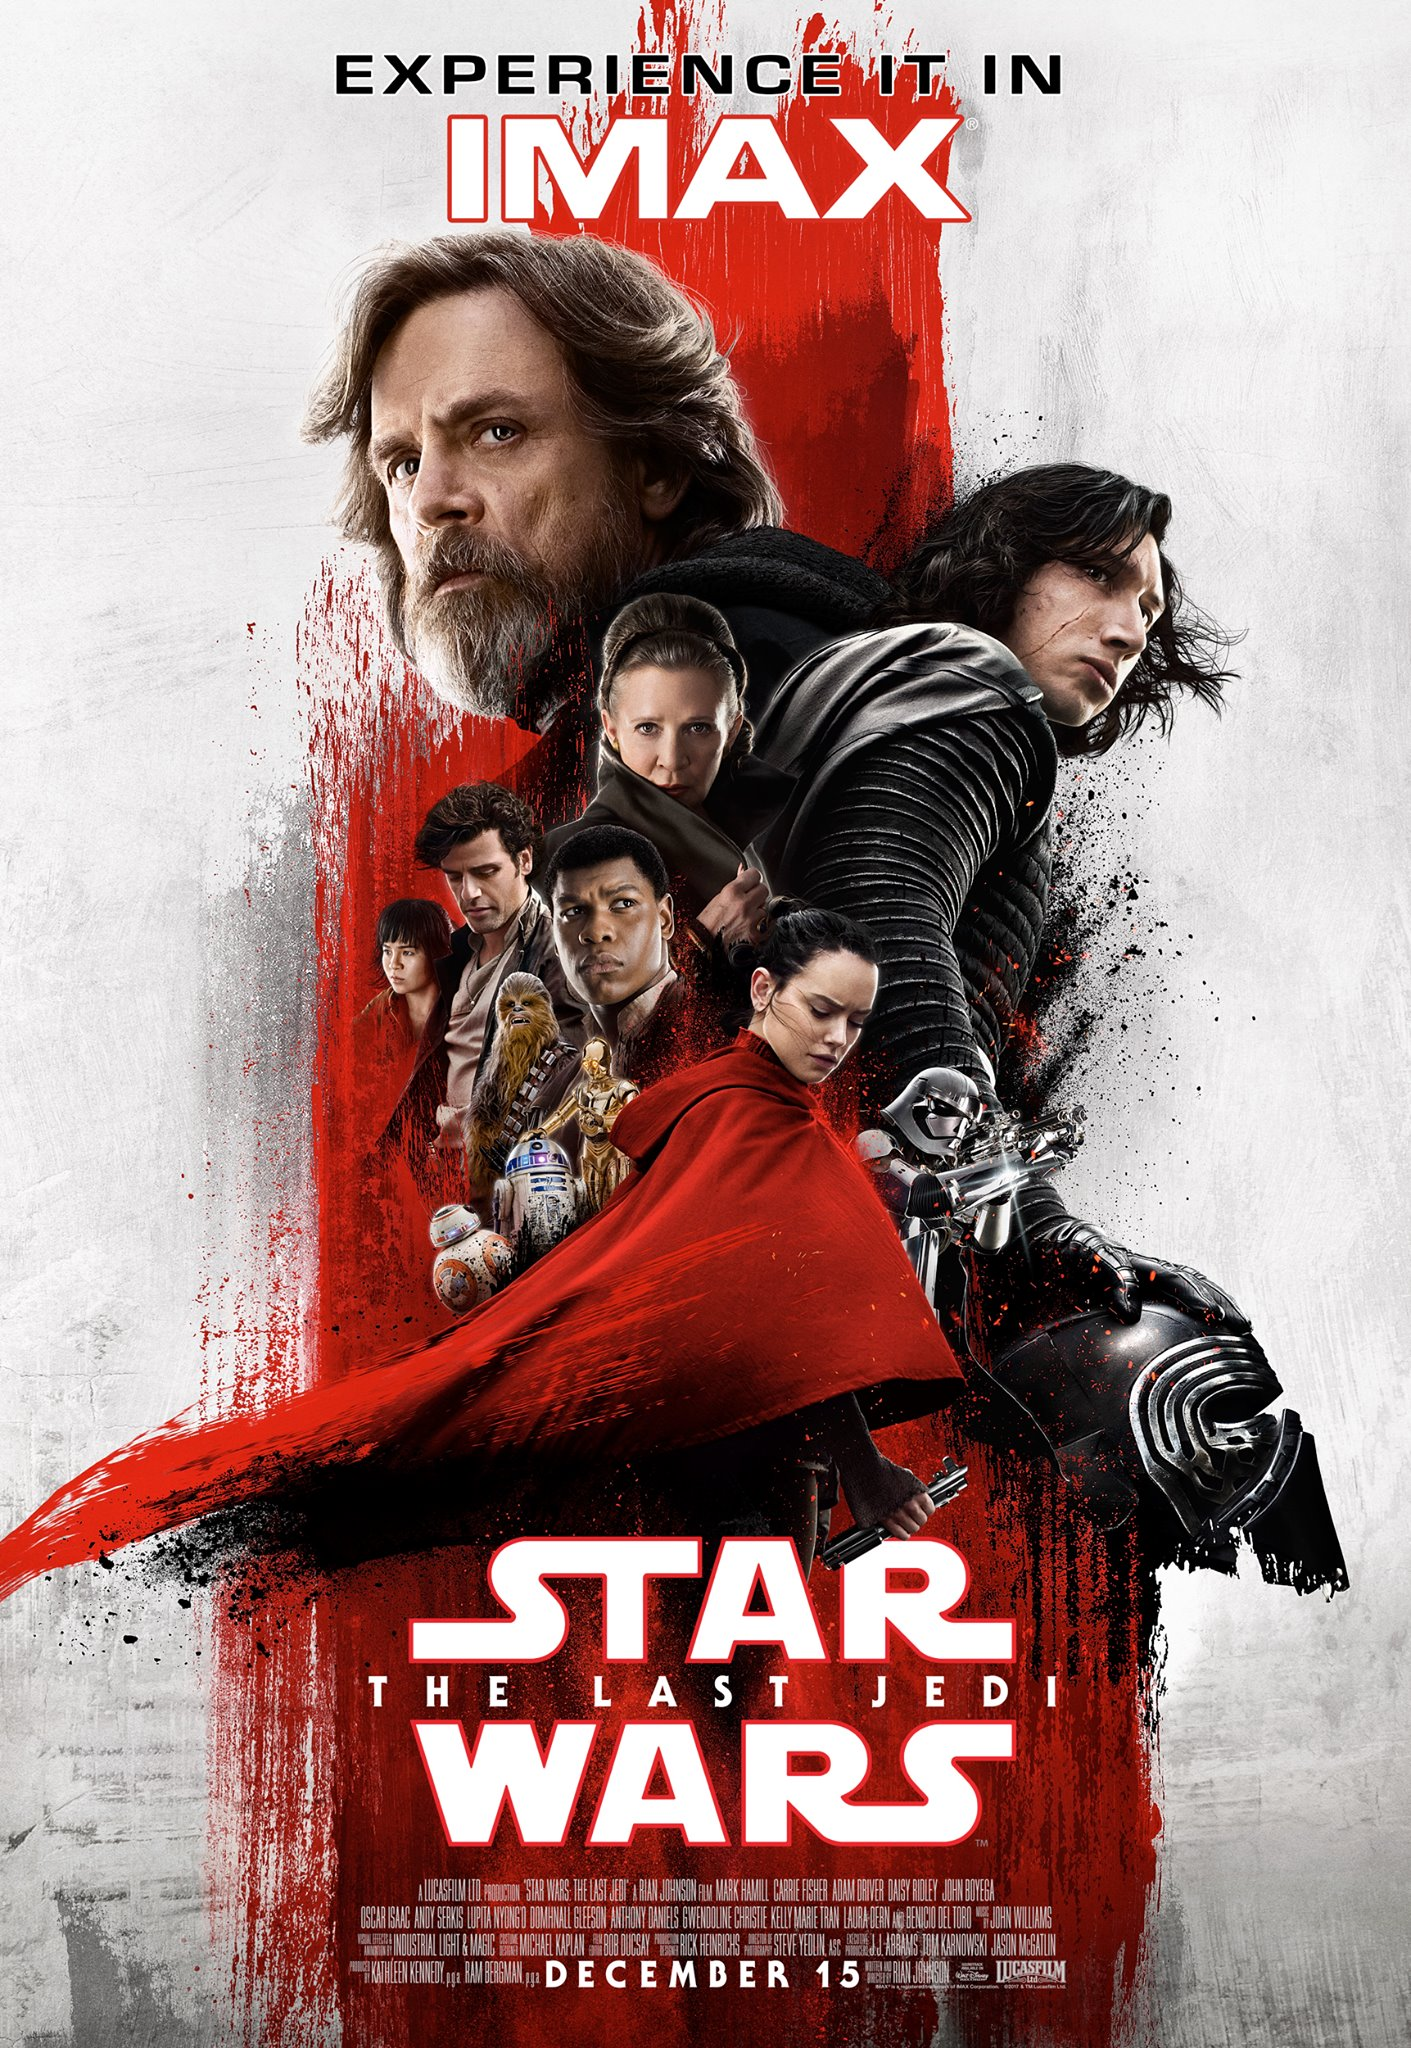 A Brooding Luke Skywalker Looms Over The Latest IMAX Poster For Star Wars: The Last Jedi